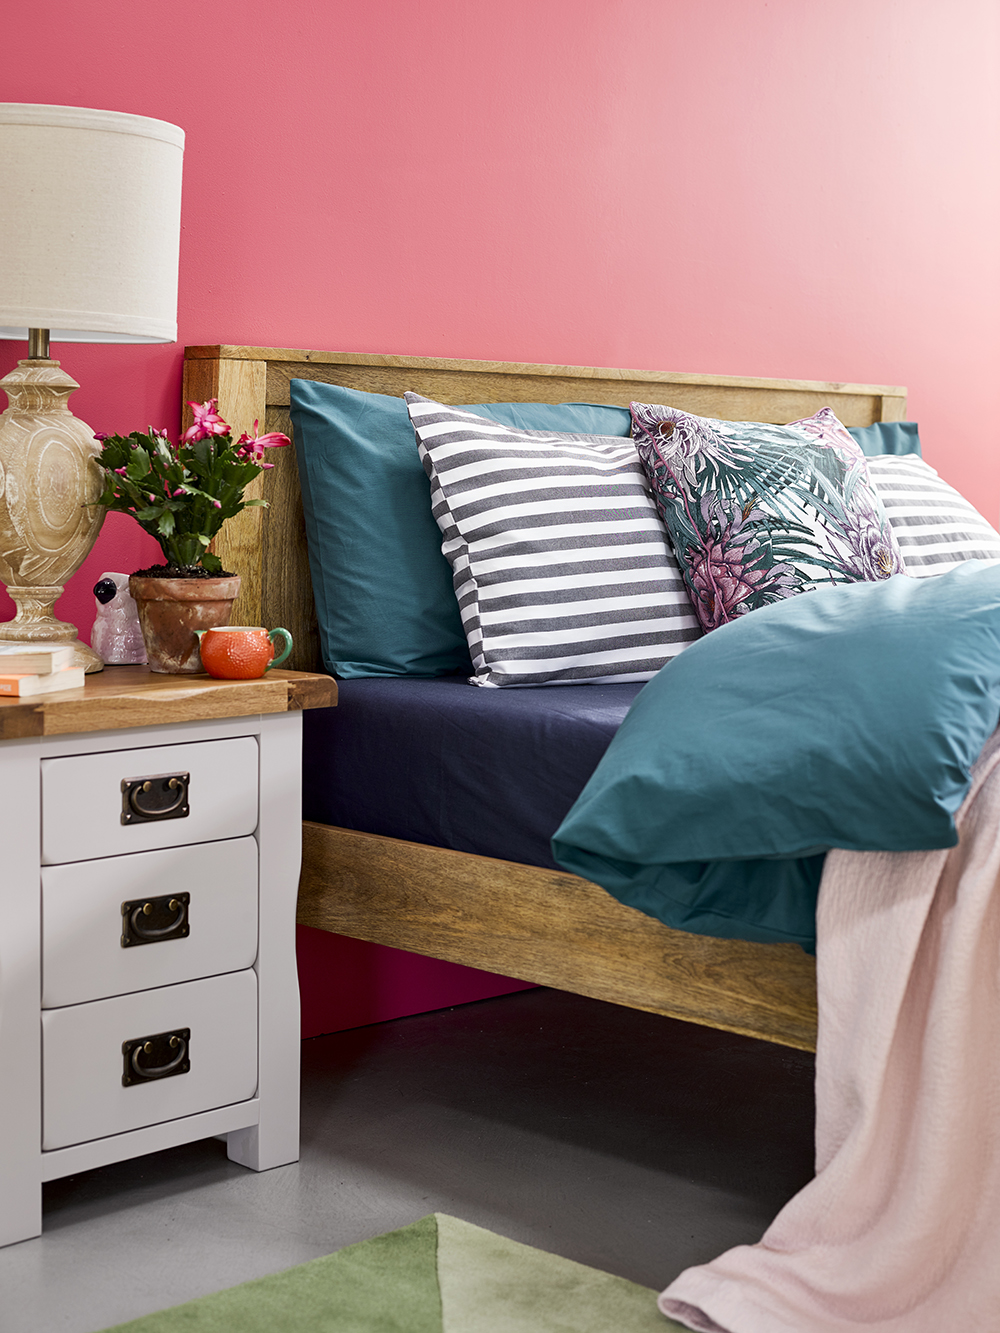 bright pink havana style bedroom with grey furniture